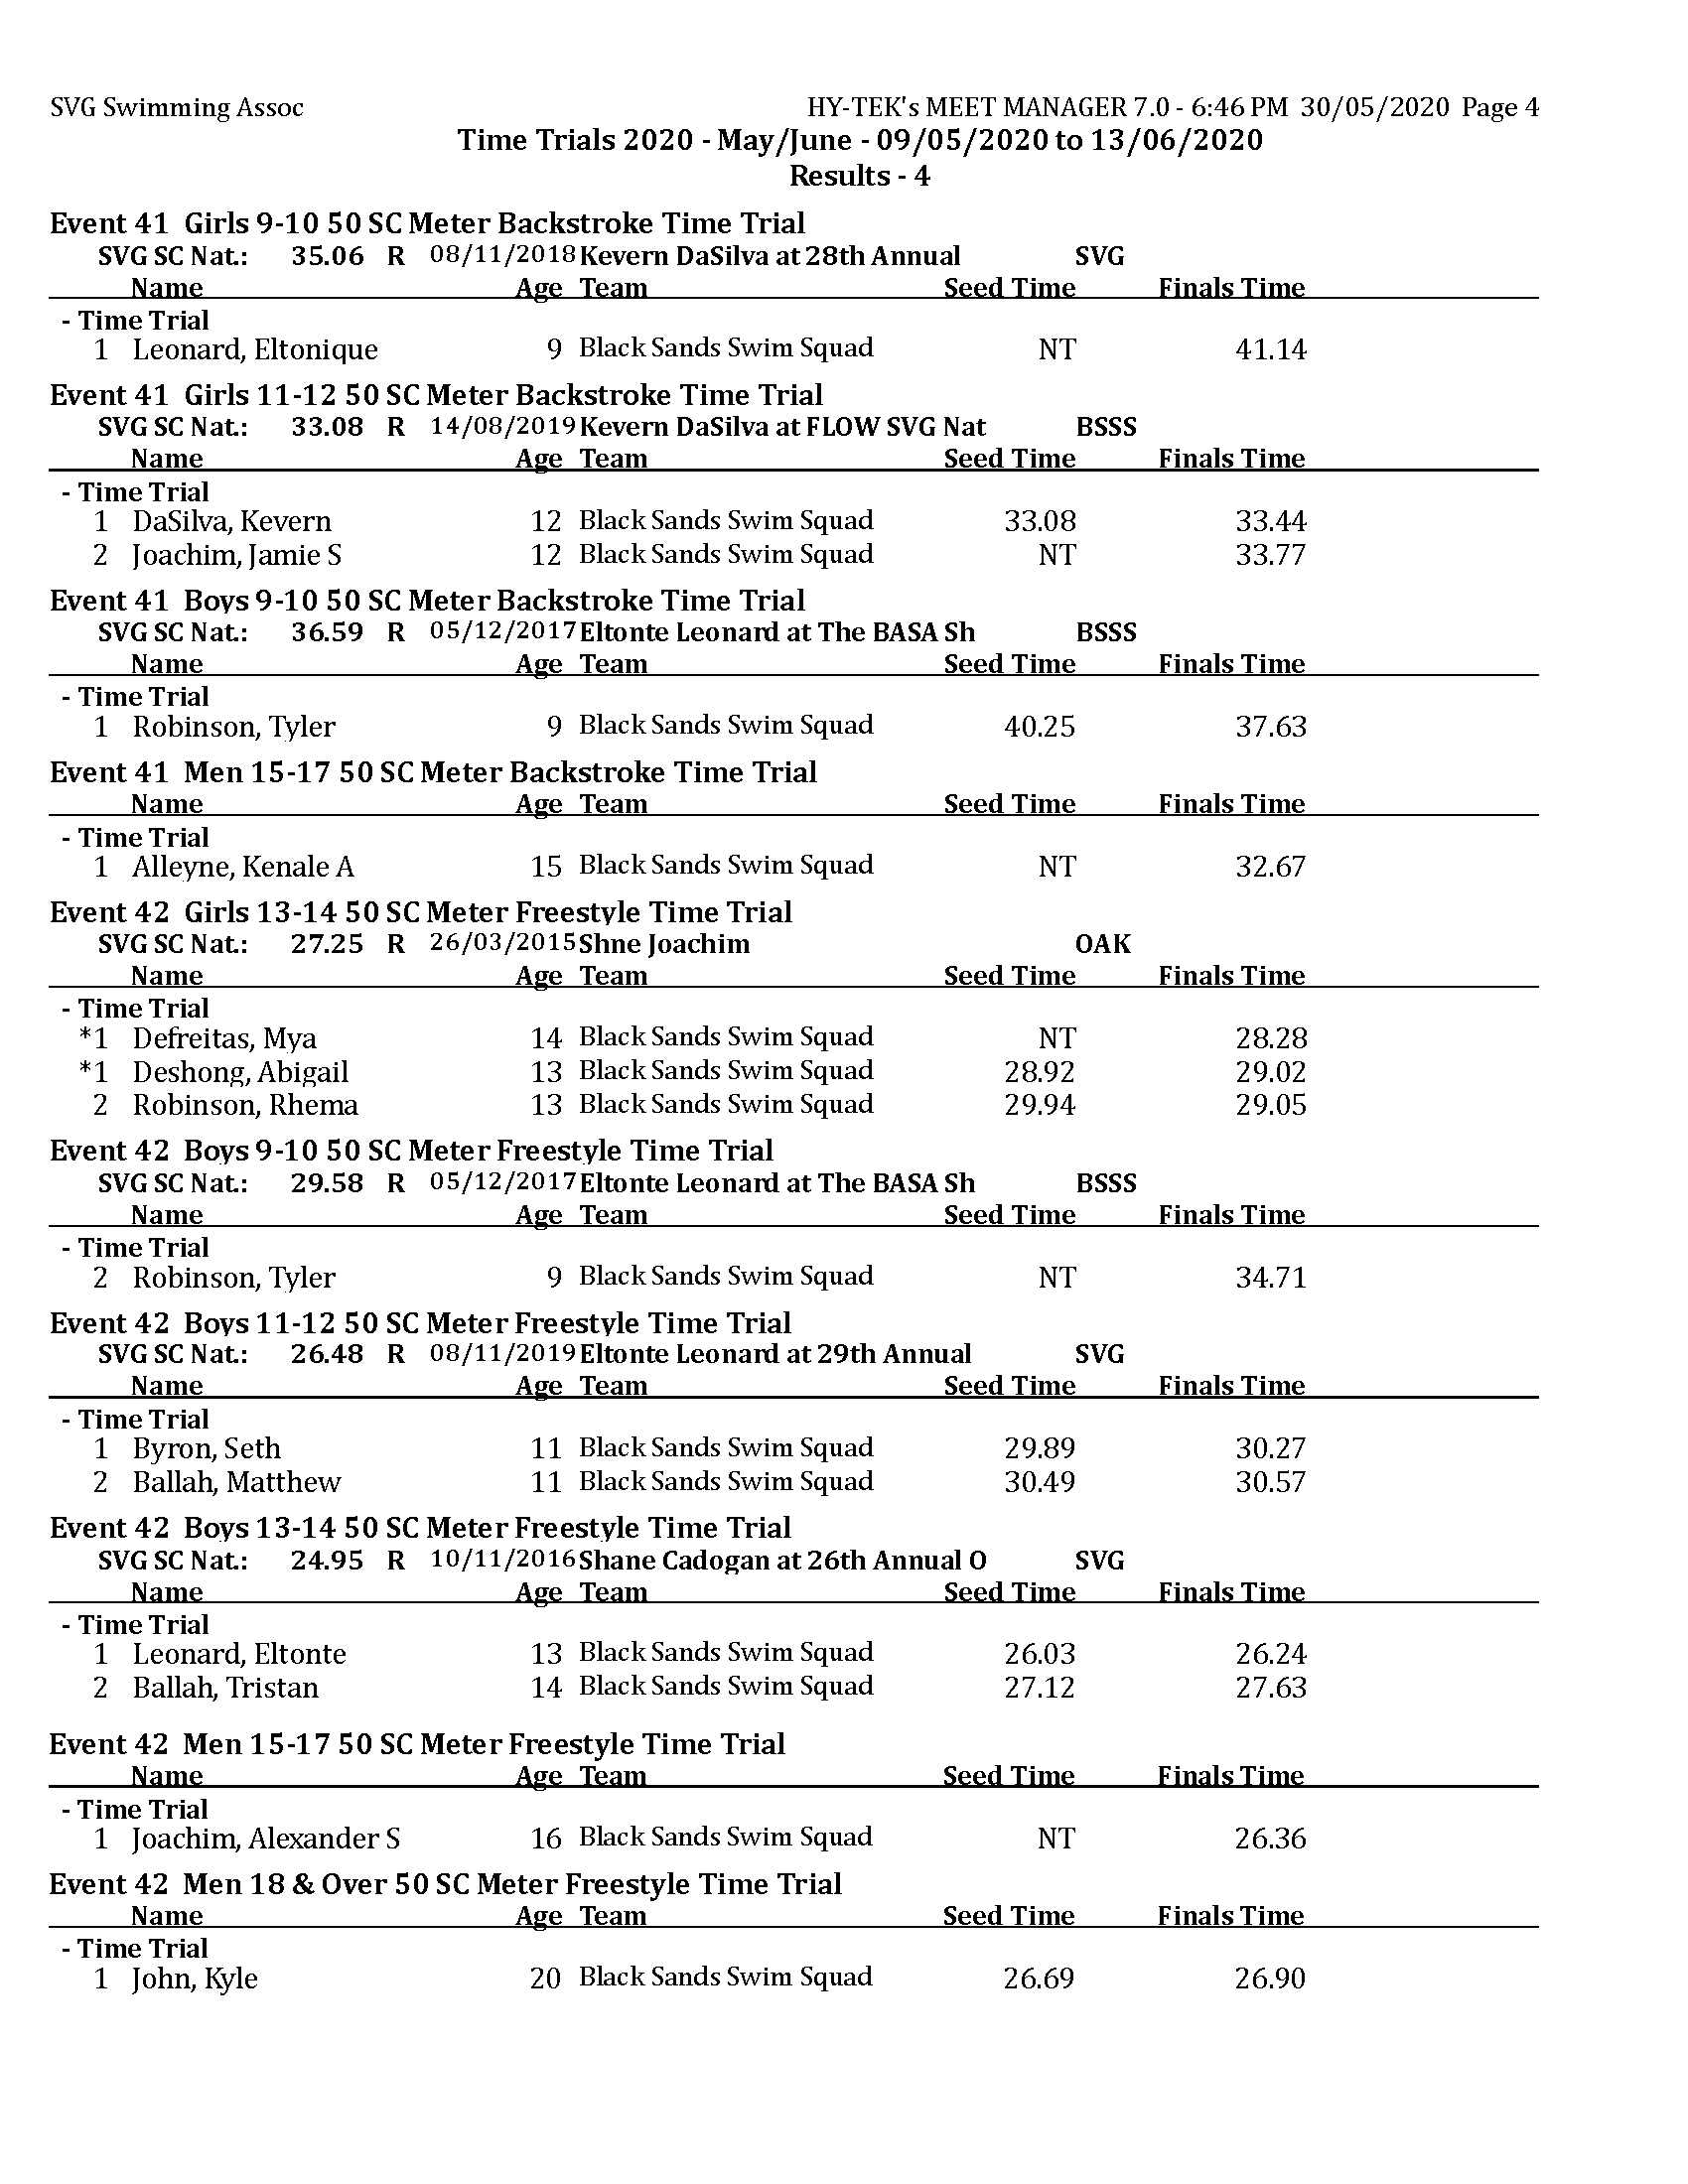 TT 2020 - May - Results day 4 MM_Page_4